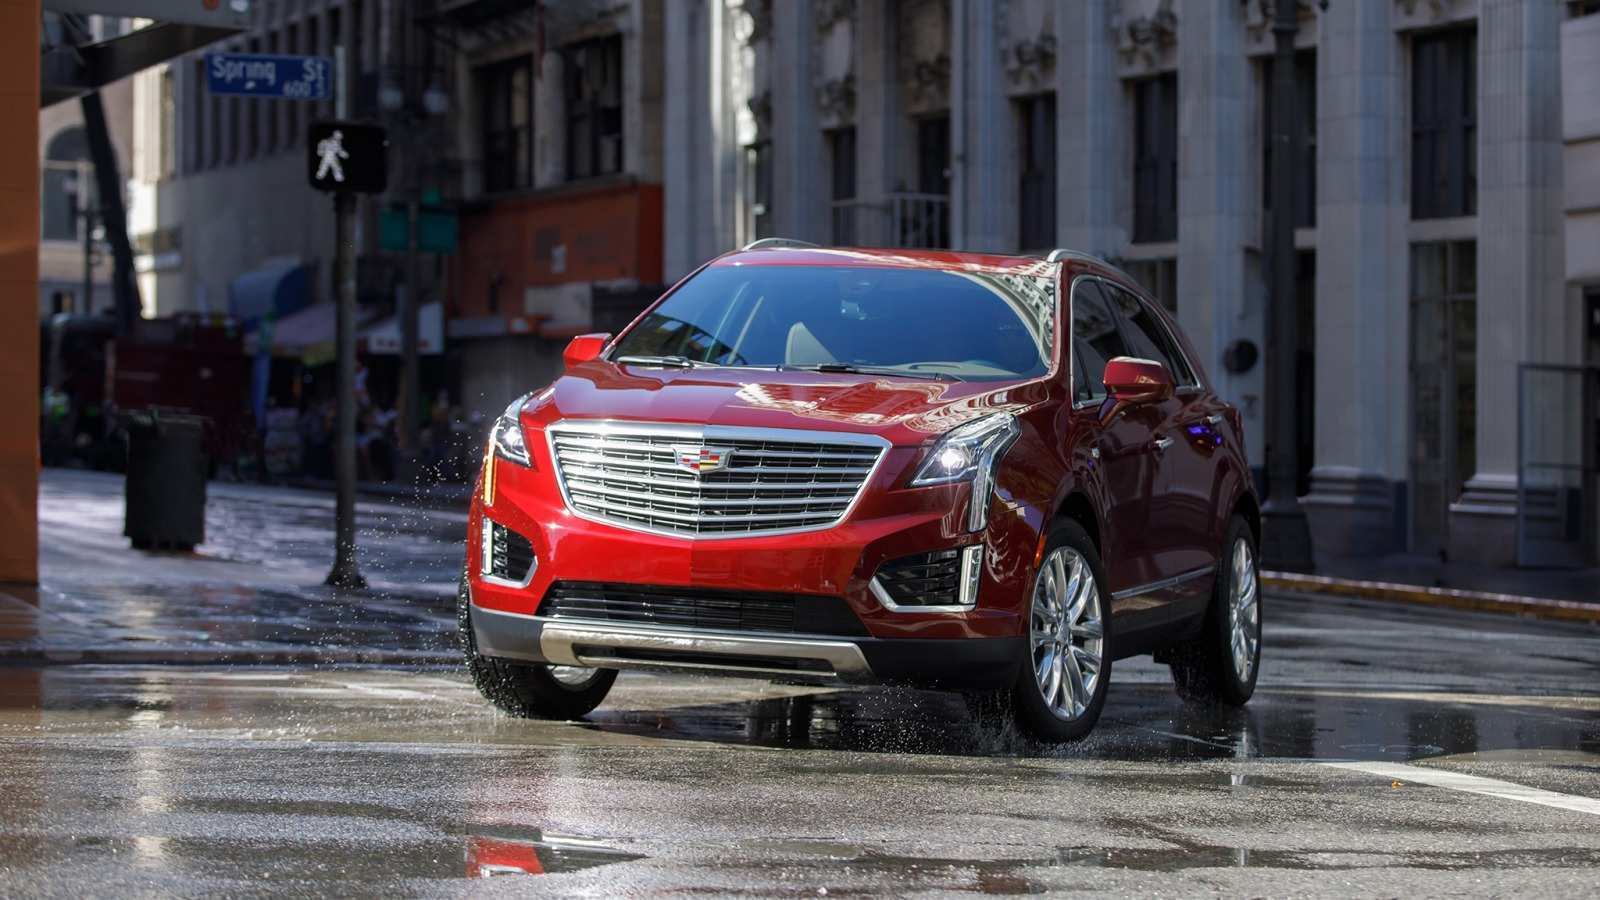 53 Gallery of 2019 Cadillac Suv Xt5 Style by 2019 Cadillac Suv Xt5